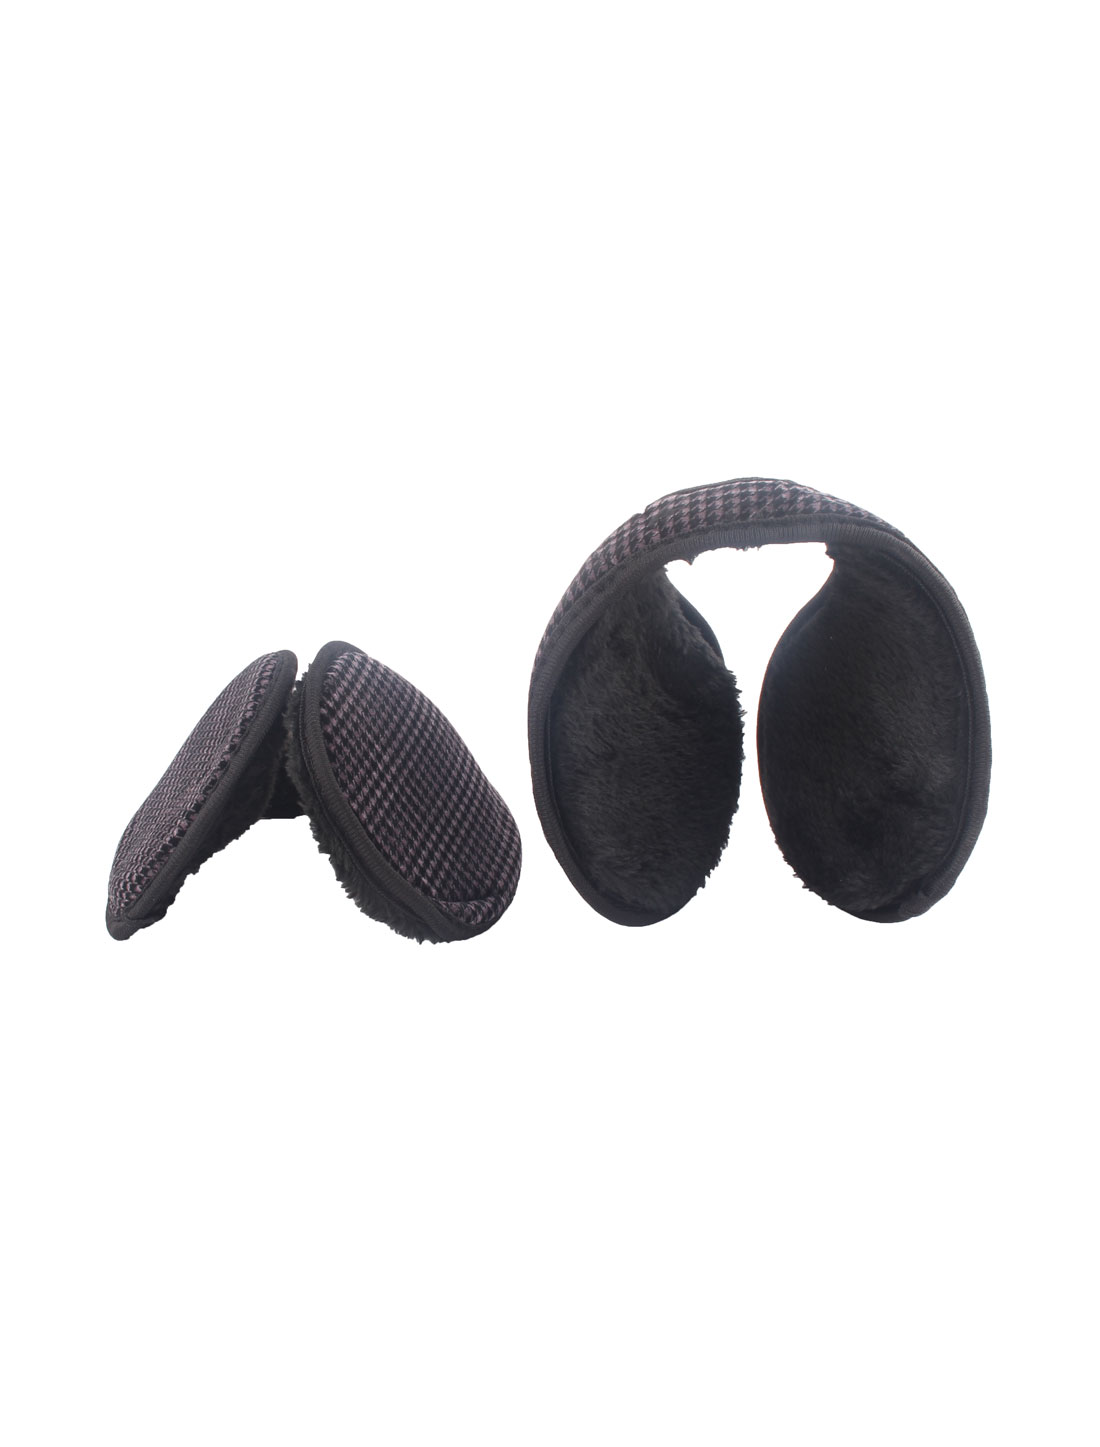 Climbing Riding Winter Fleece Grid Pattern Headwear Ear Protection Earmuff 2pcs